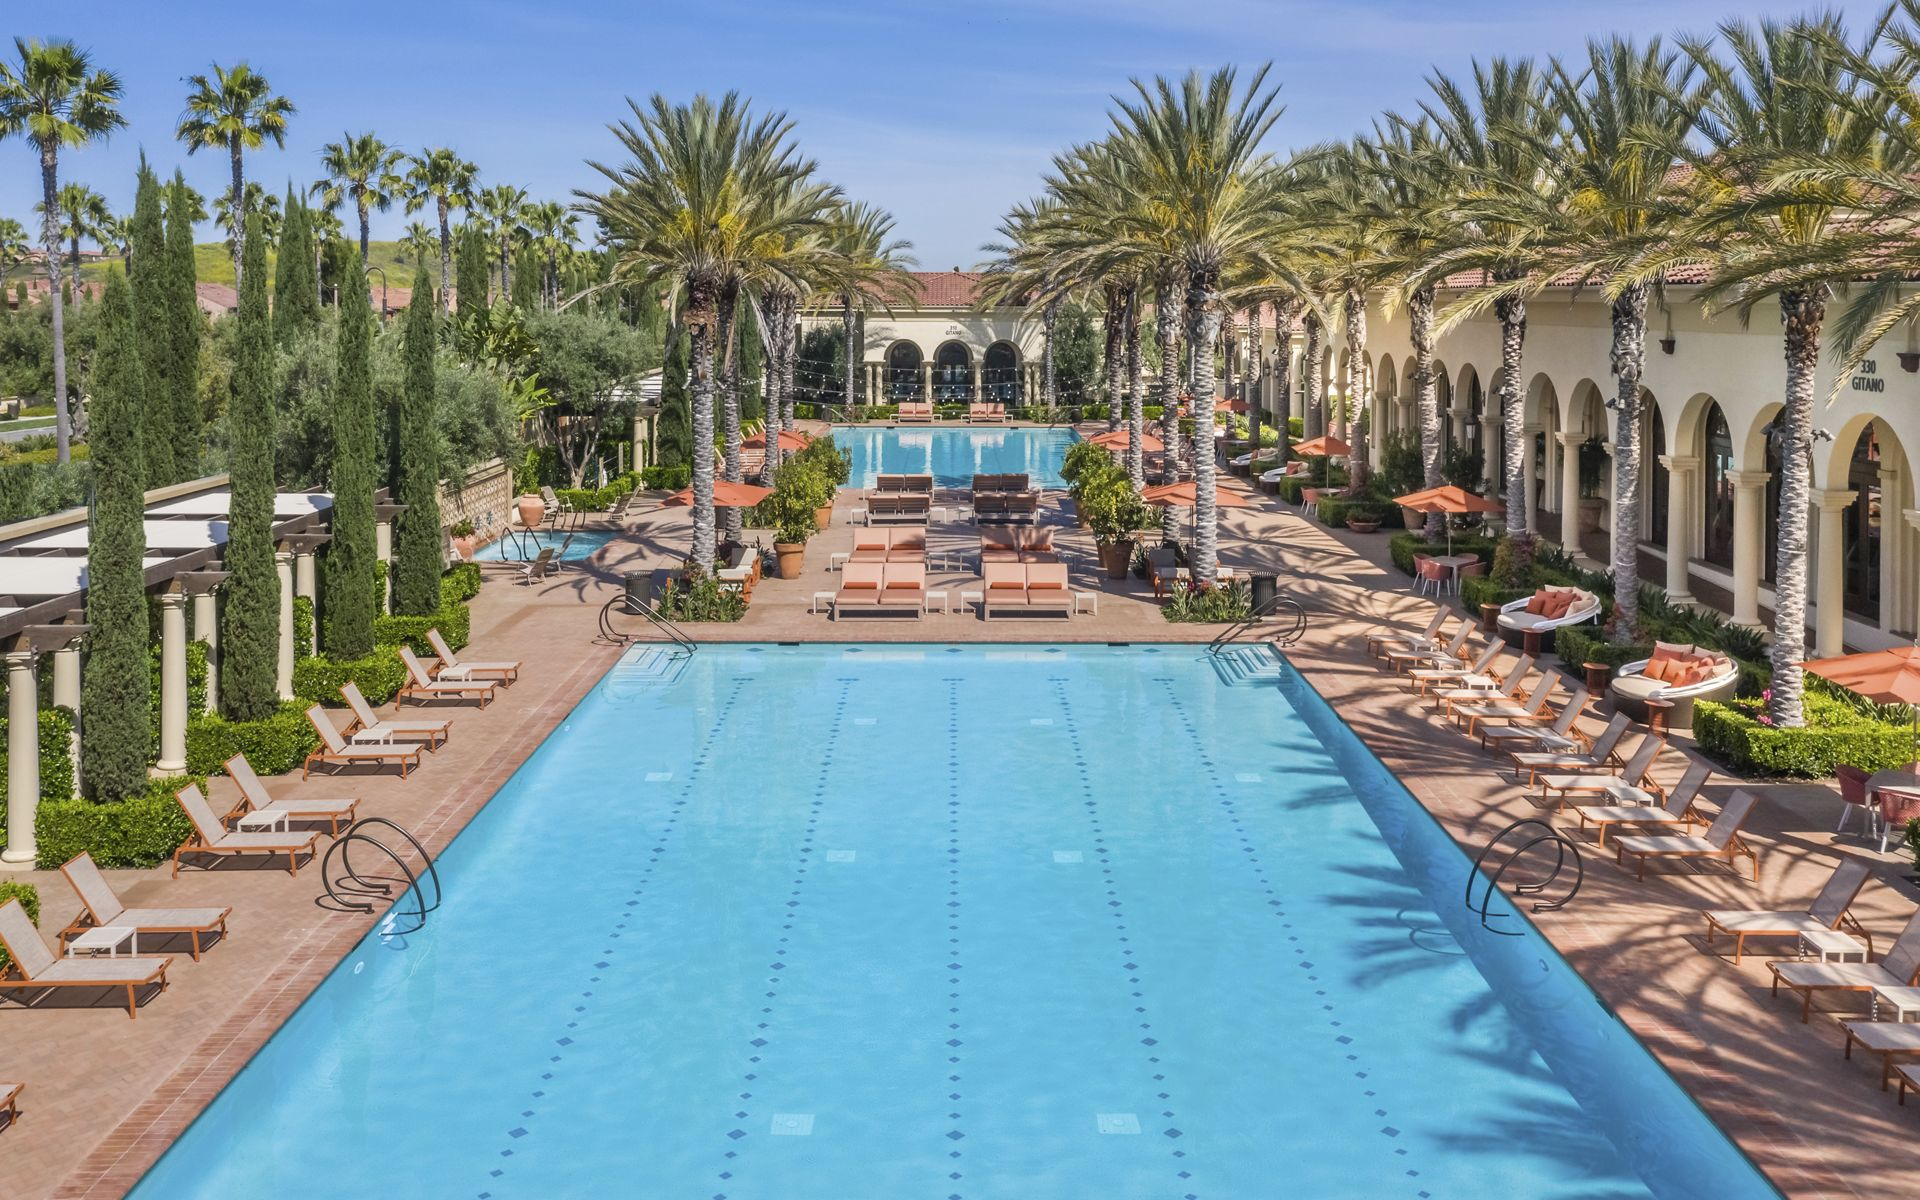 Exterior pool view at Los Olivos at Irvine Spectrum Apartment Homes in Irvine, CA.